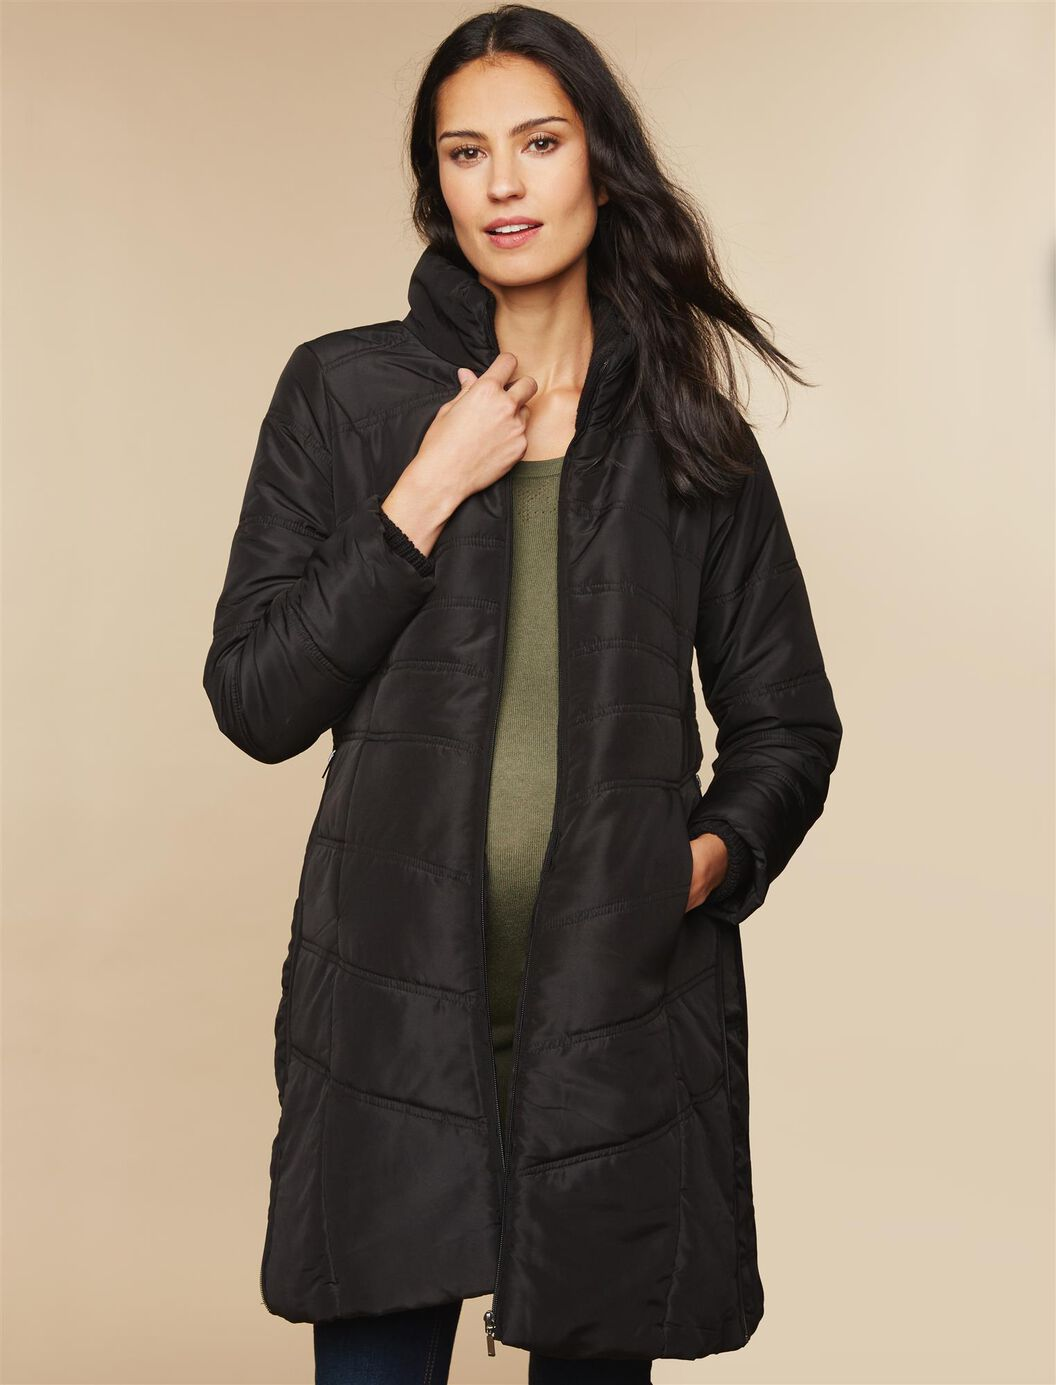 Quilted Puffer Knee Length Maternity Coat at Motherhood Maternity in Victor, NY | Tuggl